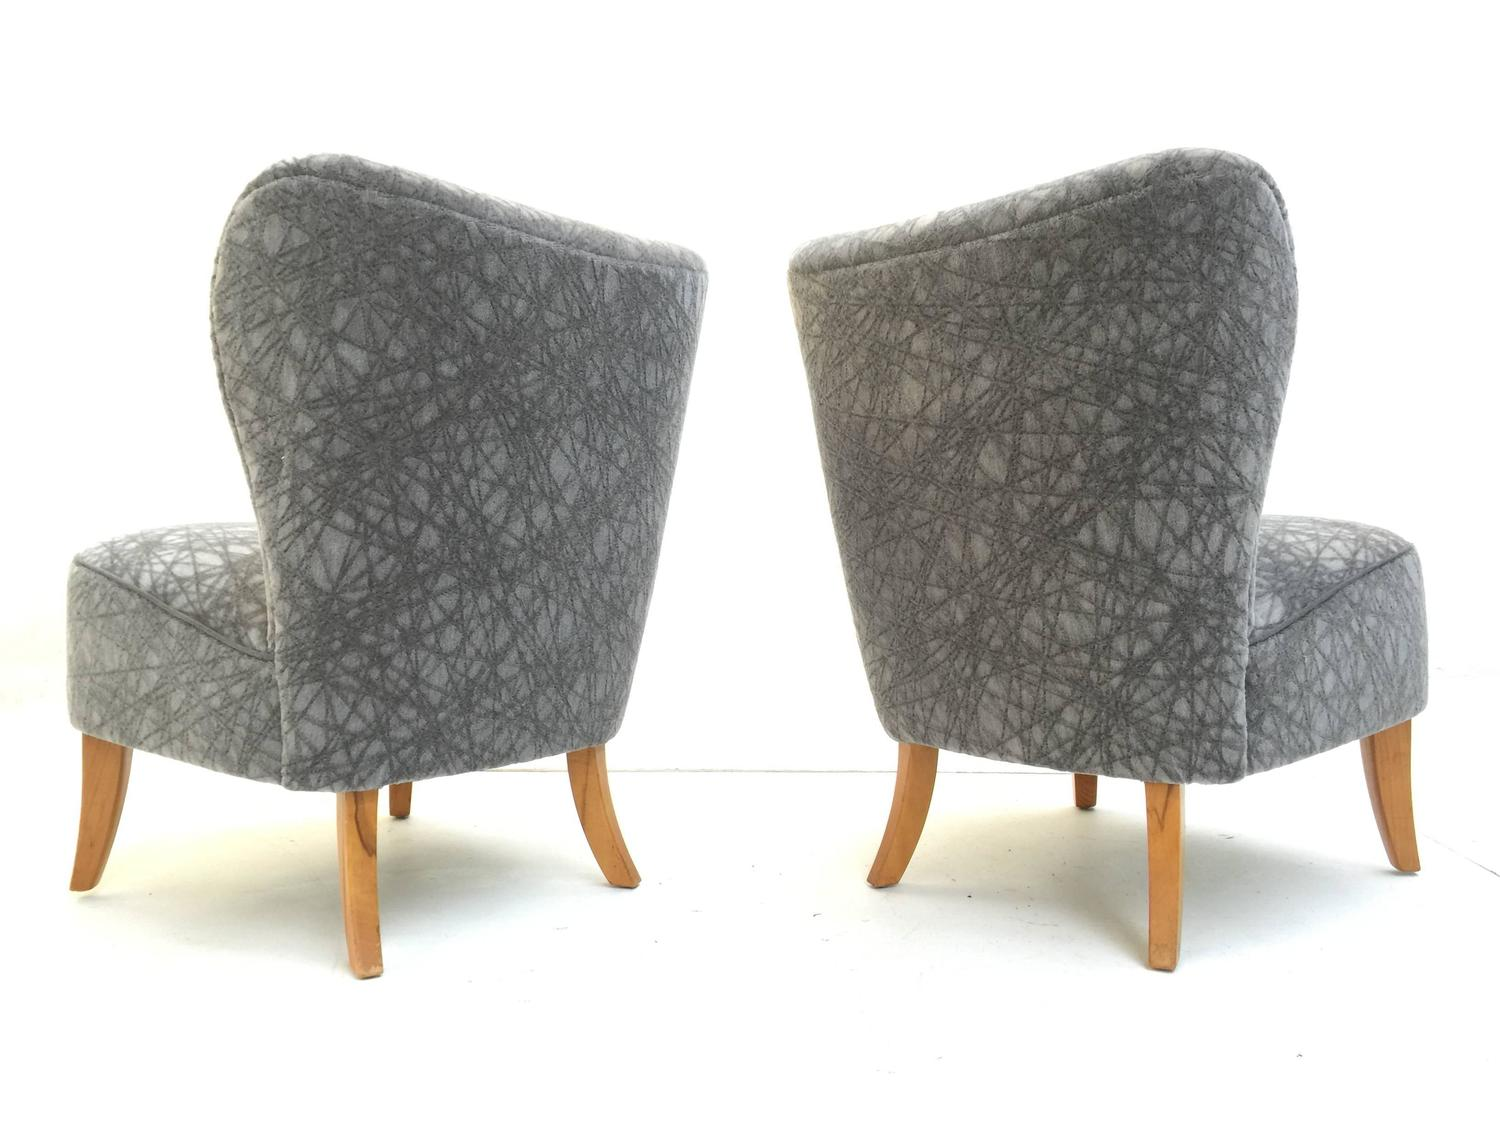 grey velvet slipper chair aniline leather lounge and ottoman pair of 1950s tijsseling chairs in geometric